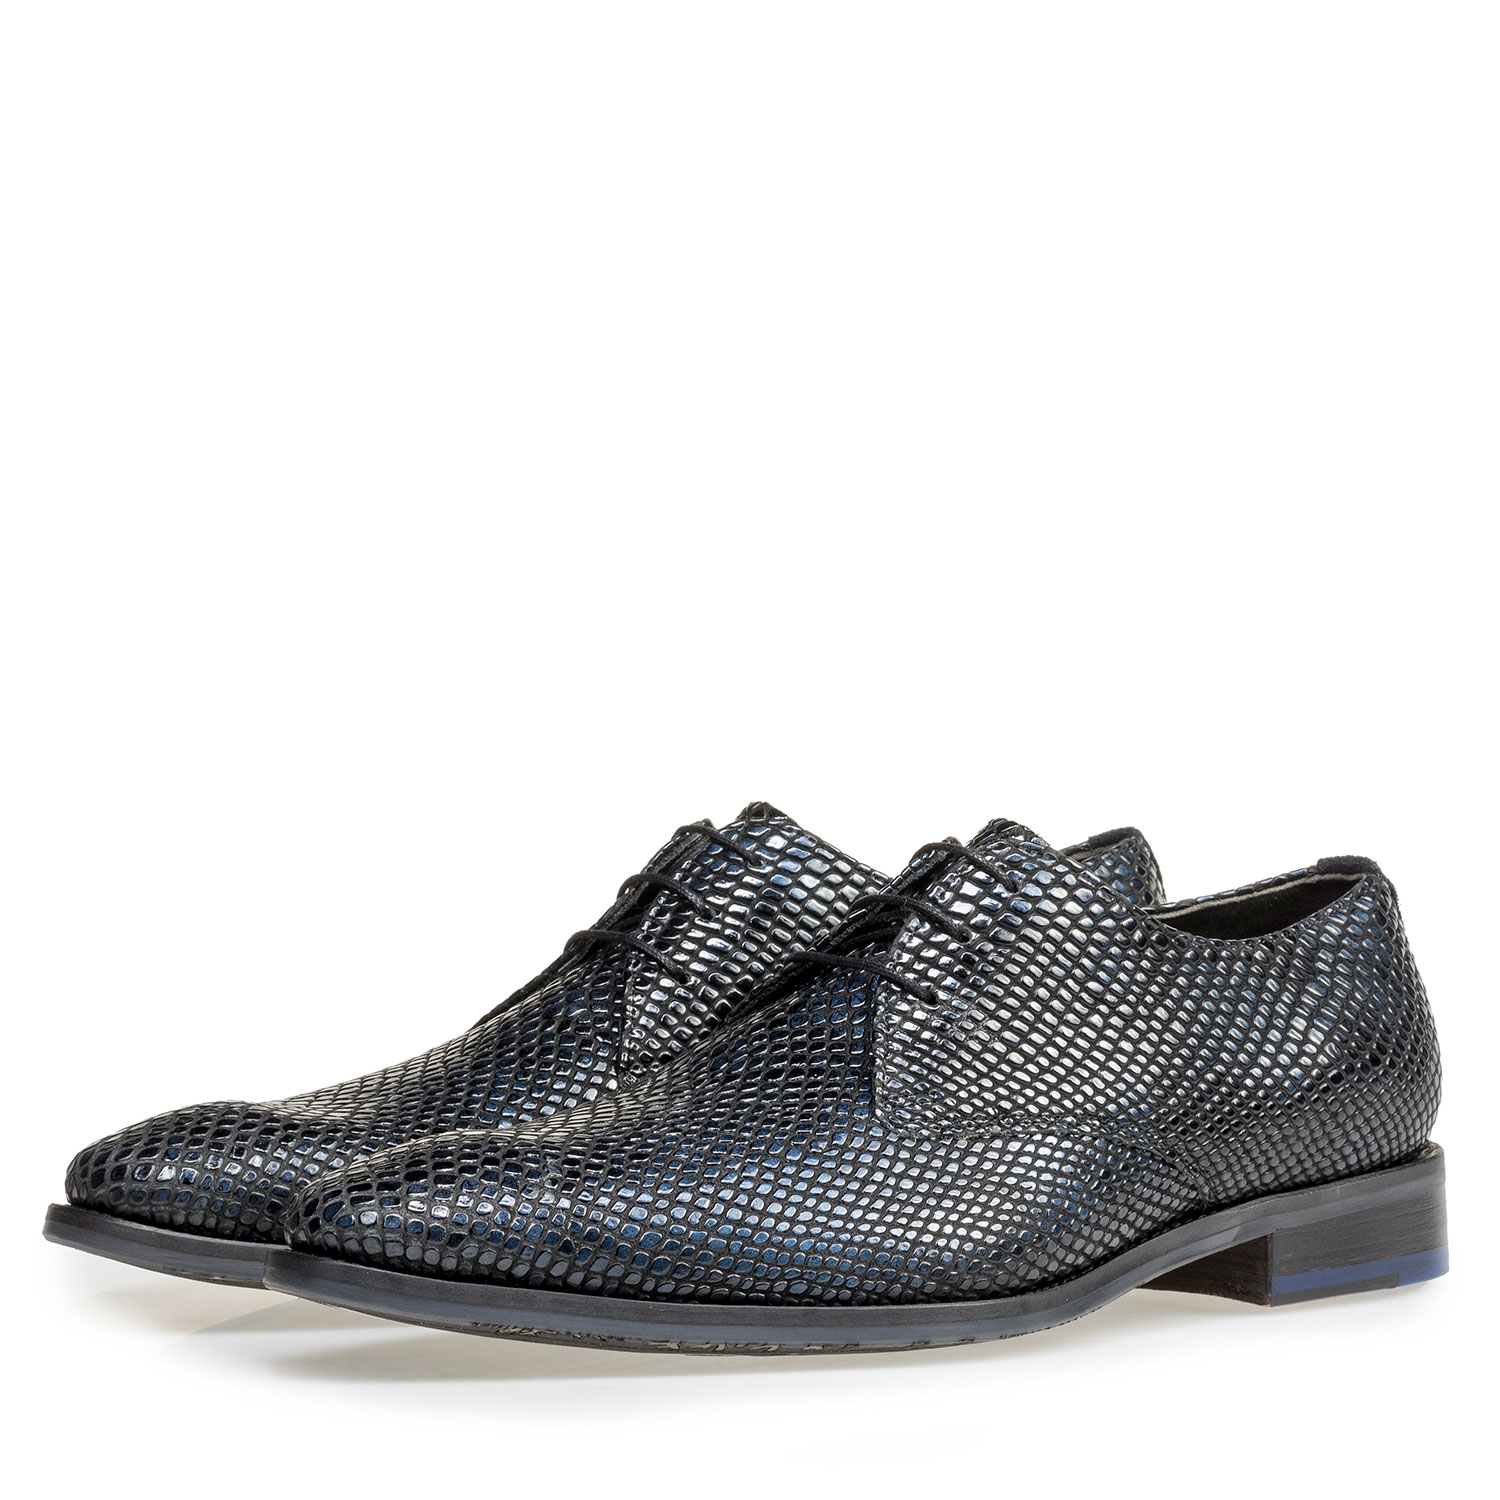 18293/00 - Blue printed patent leather lace shoe